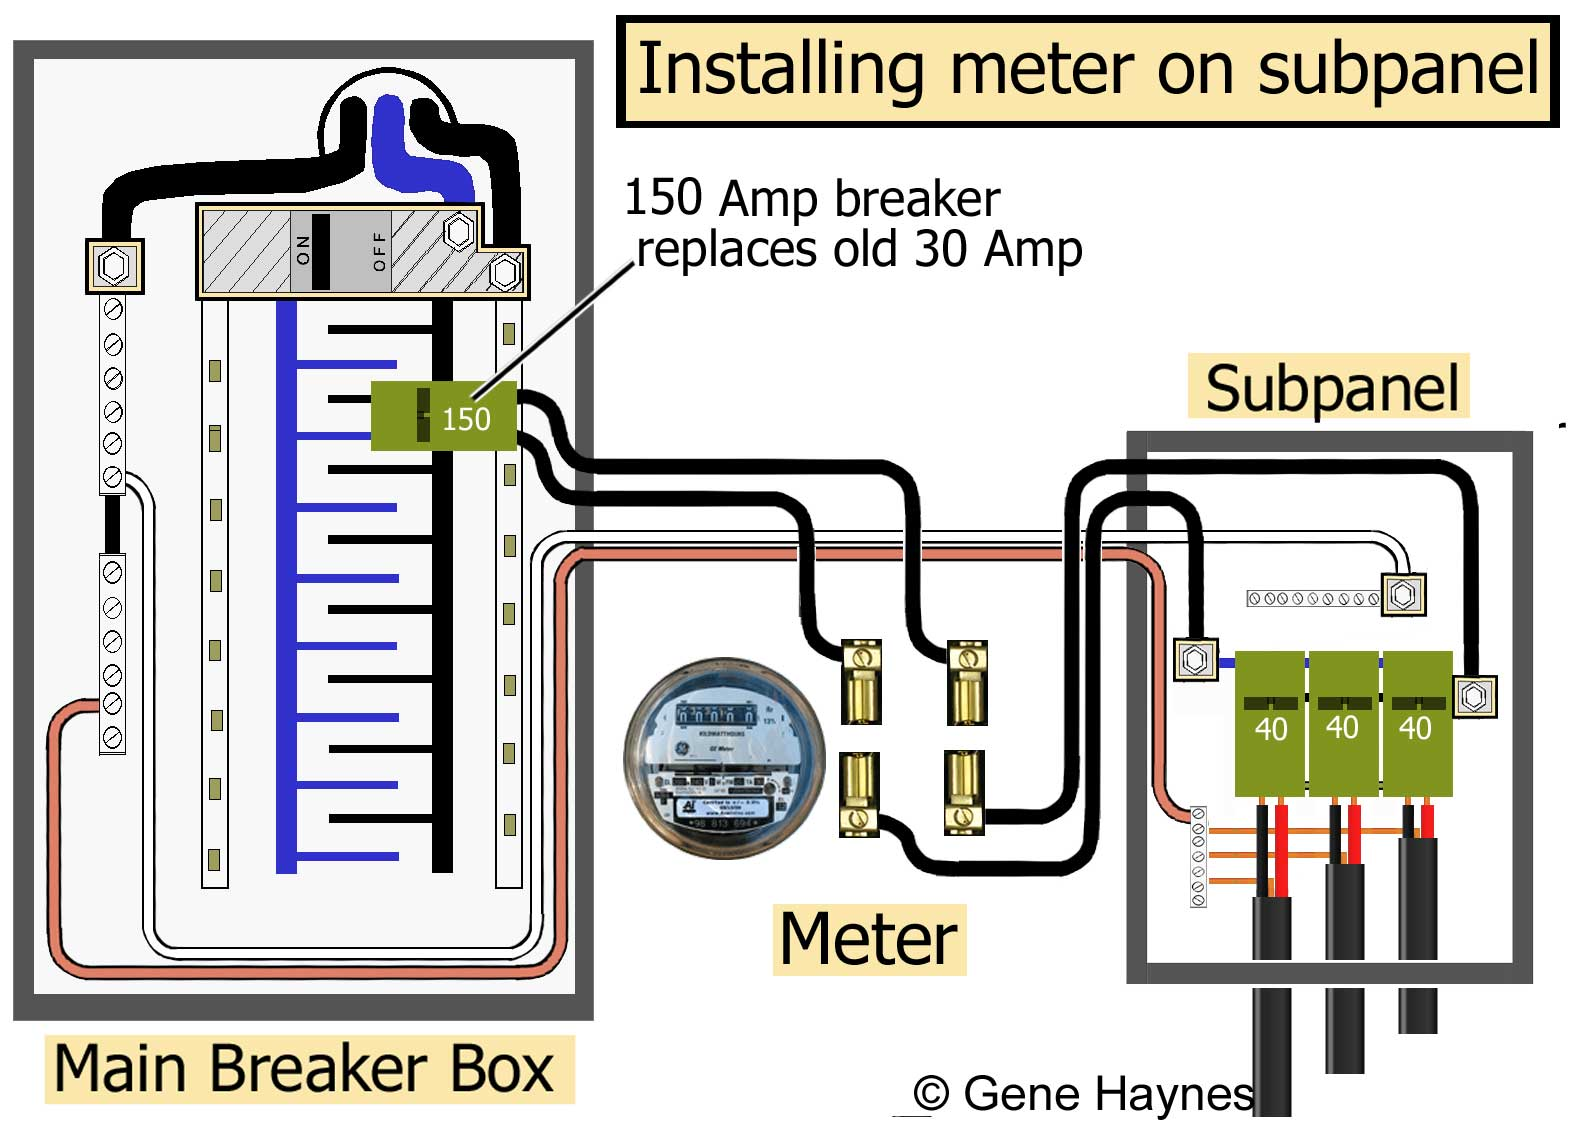 neutral wire only necessary for 120volt breakers  illustration shows  neutral wire in event you want a 120v-240 subpanel